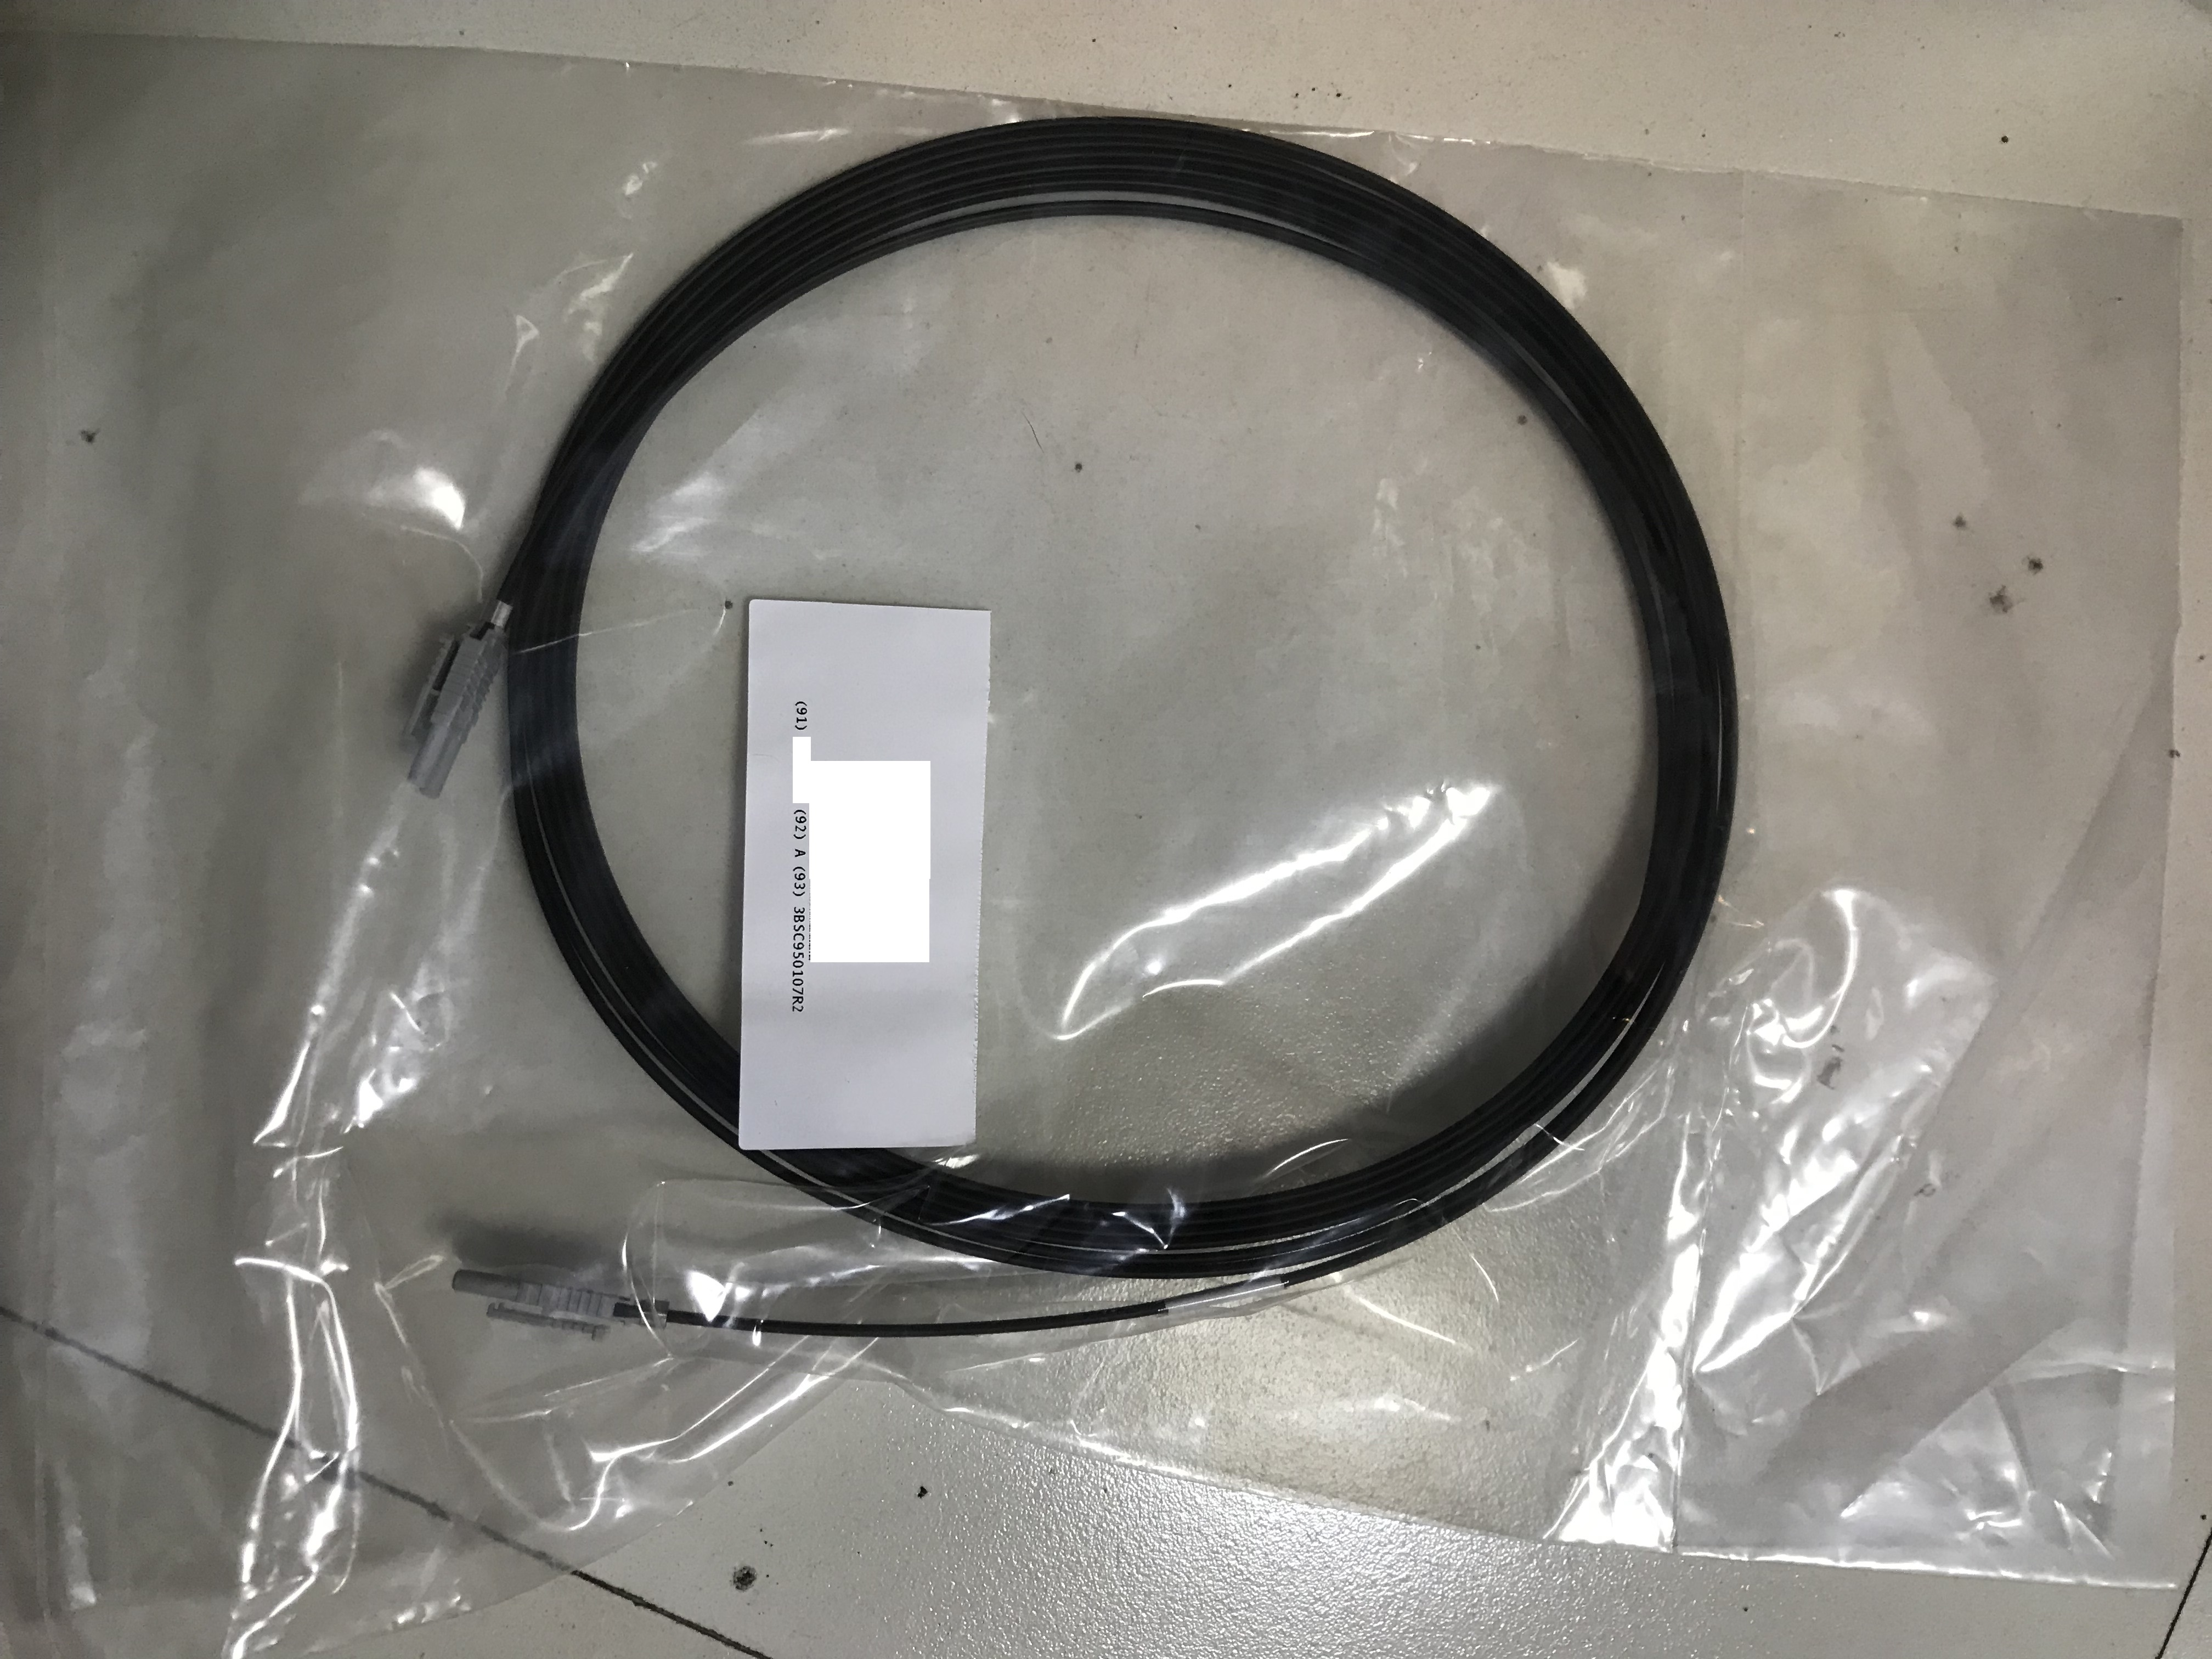 TK812V050 POF Cable 3BSC950118R2